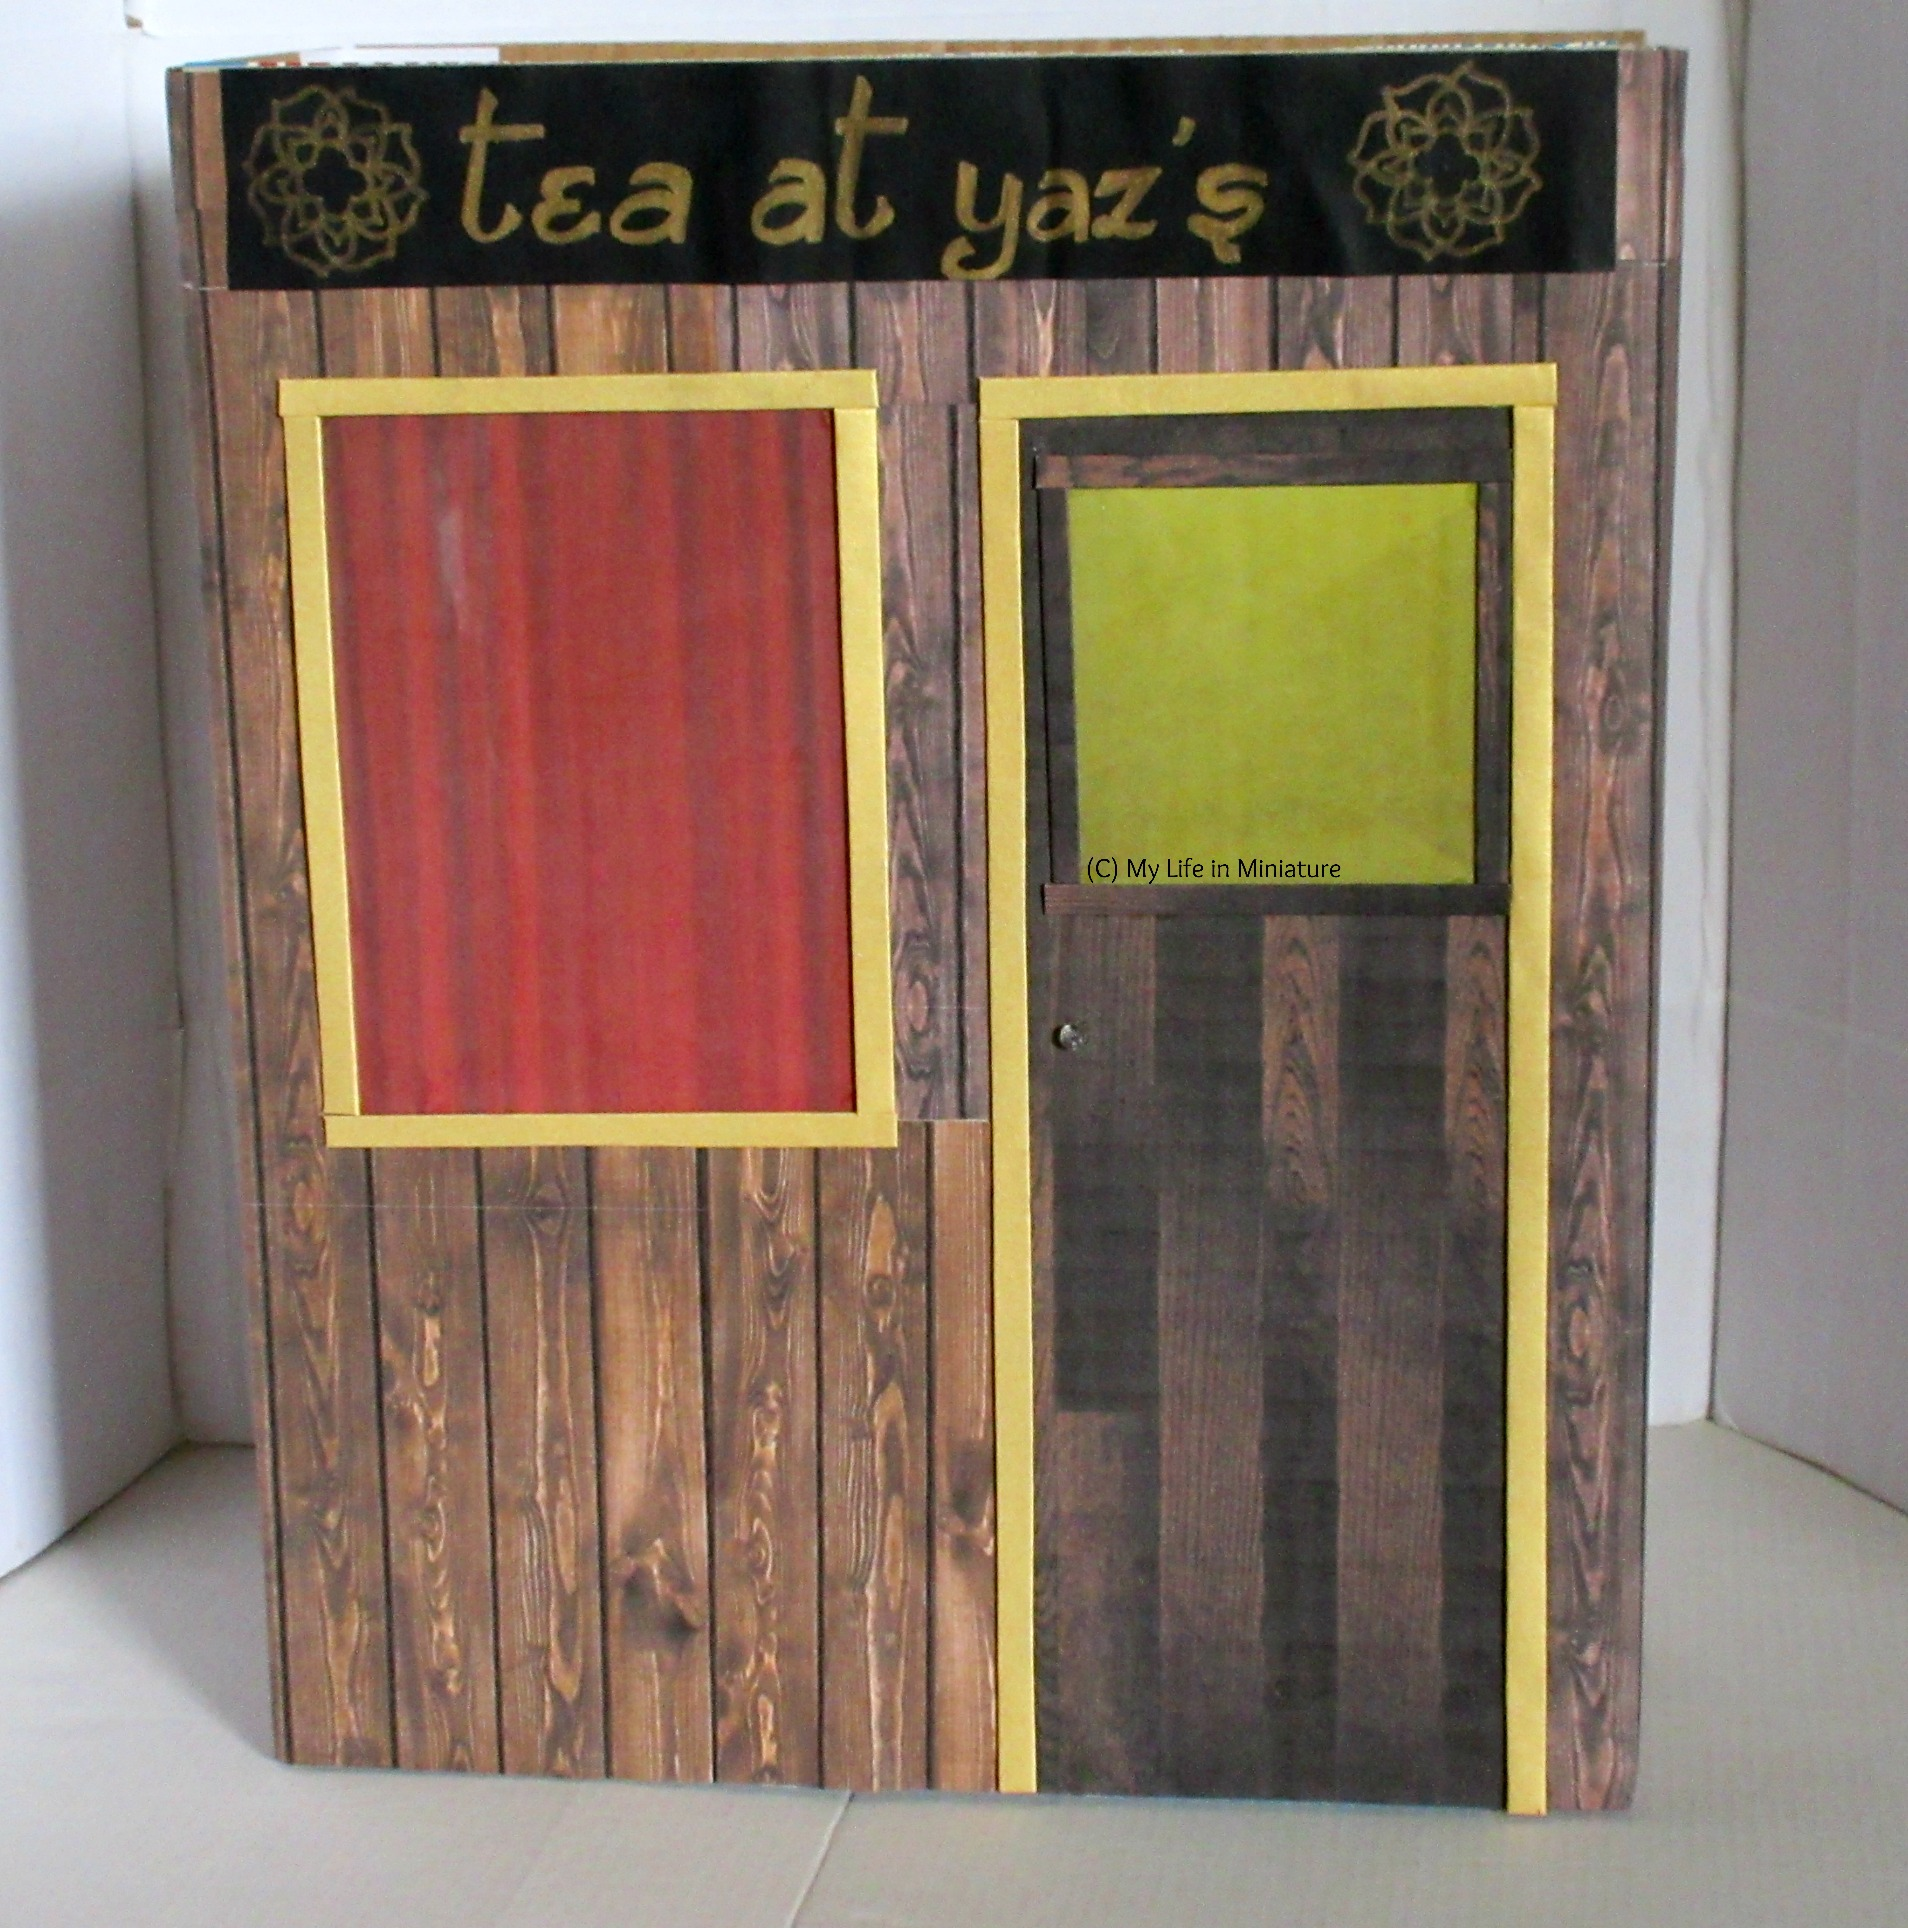 The wood-covered cereal box looks more like a shopfront now. The red rectangle is surrounded by gold trim, and next to it is a door. The door is also dark wood with a yellow window in the top, and is also surrounded by gold trim.